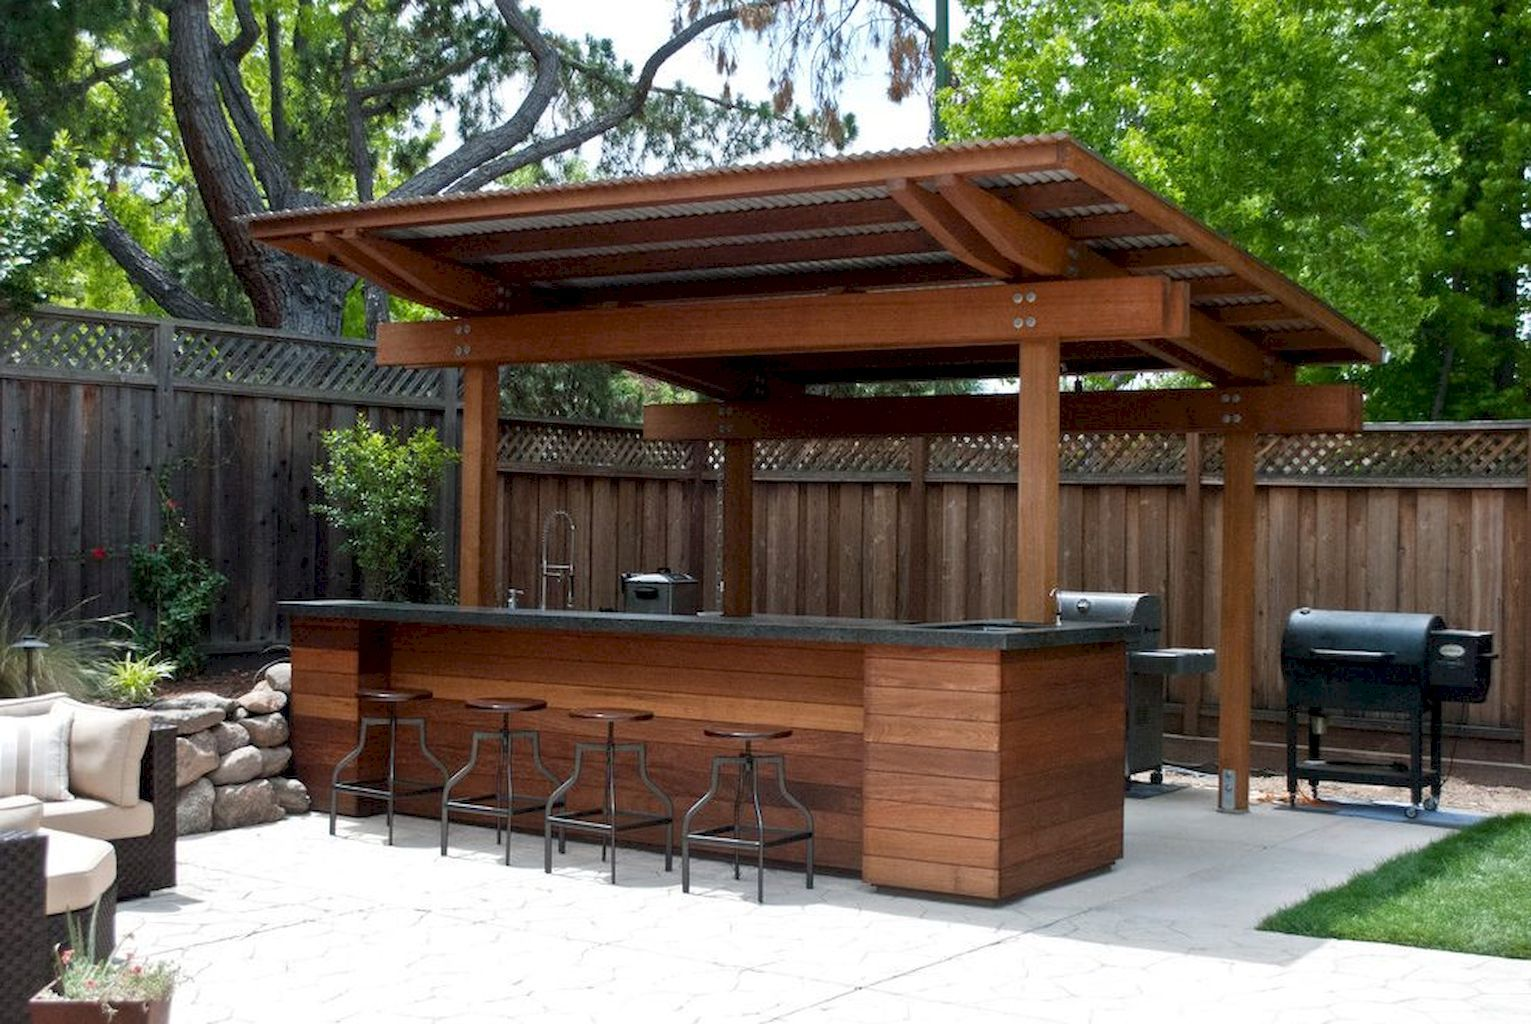 9 Awesome Outdoor Kitchens Ideas On A Budget   Backyard patio ...